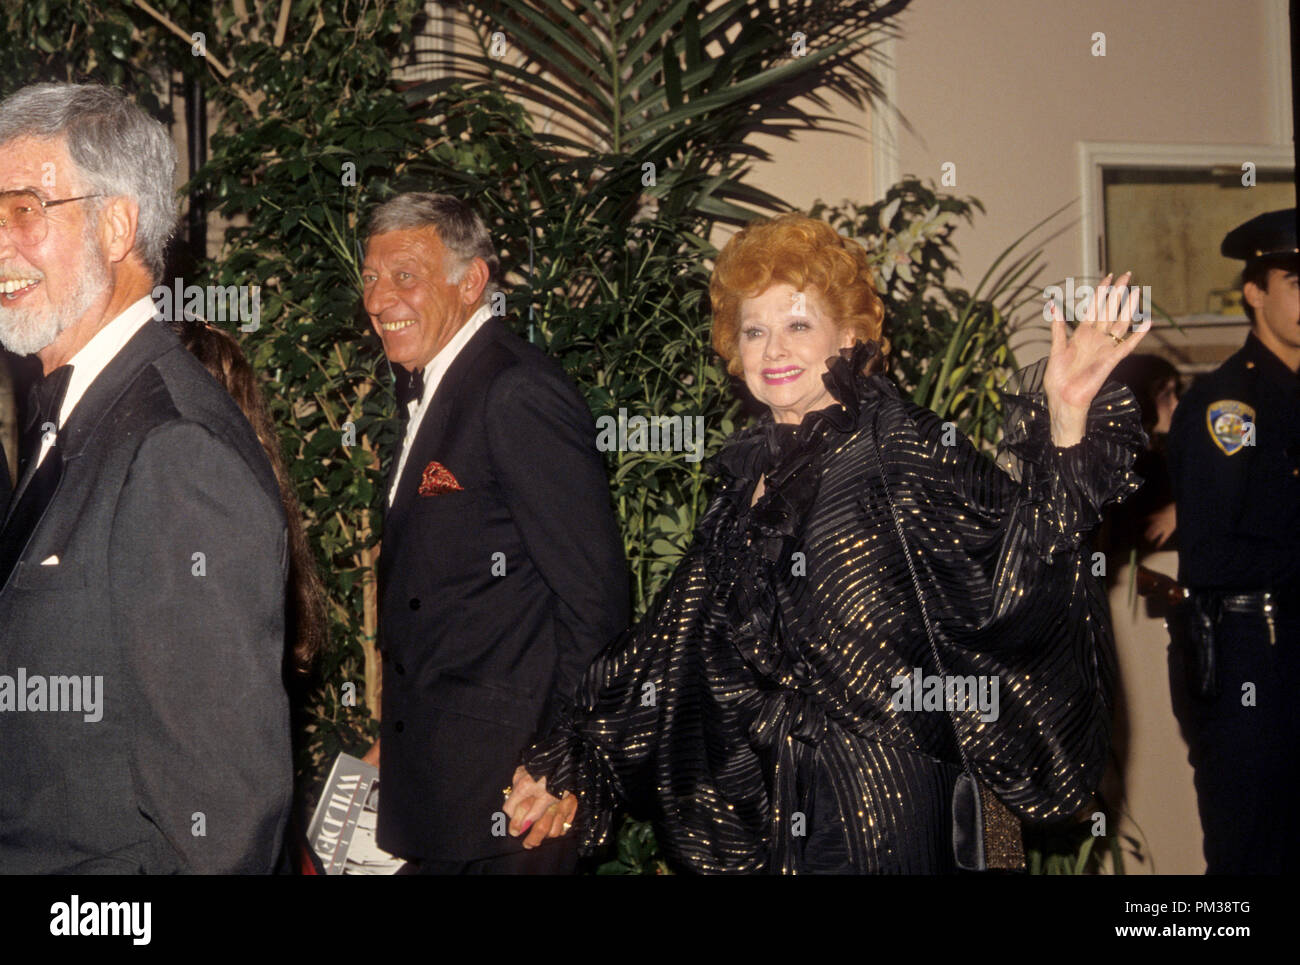 lucille-ball-and-husband-gary-morton-at-